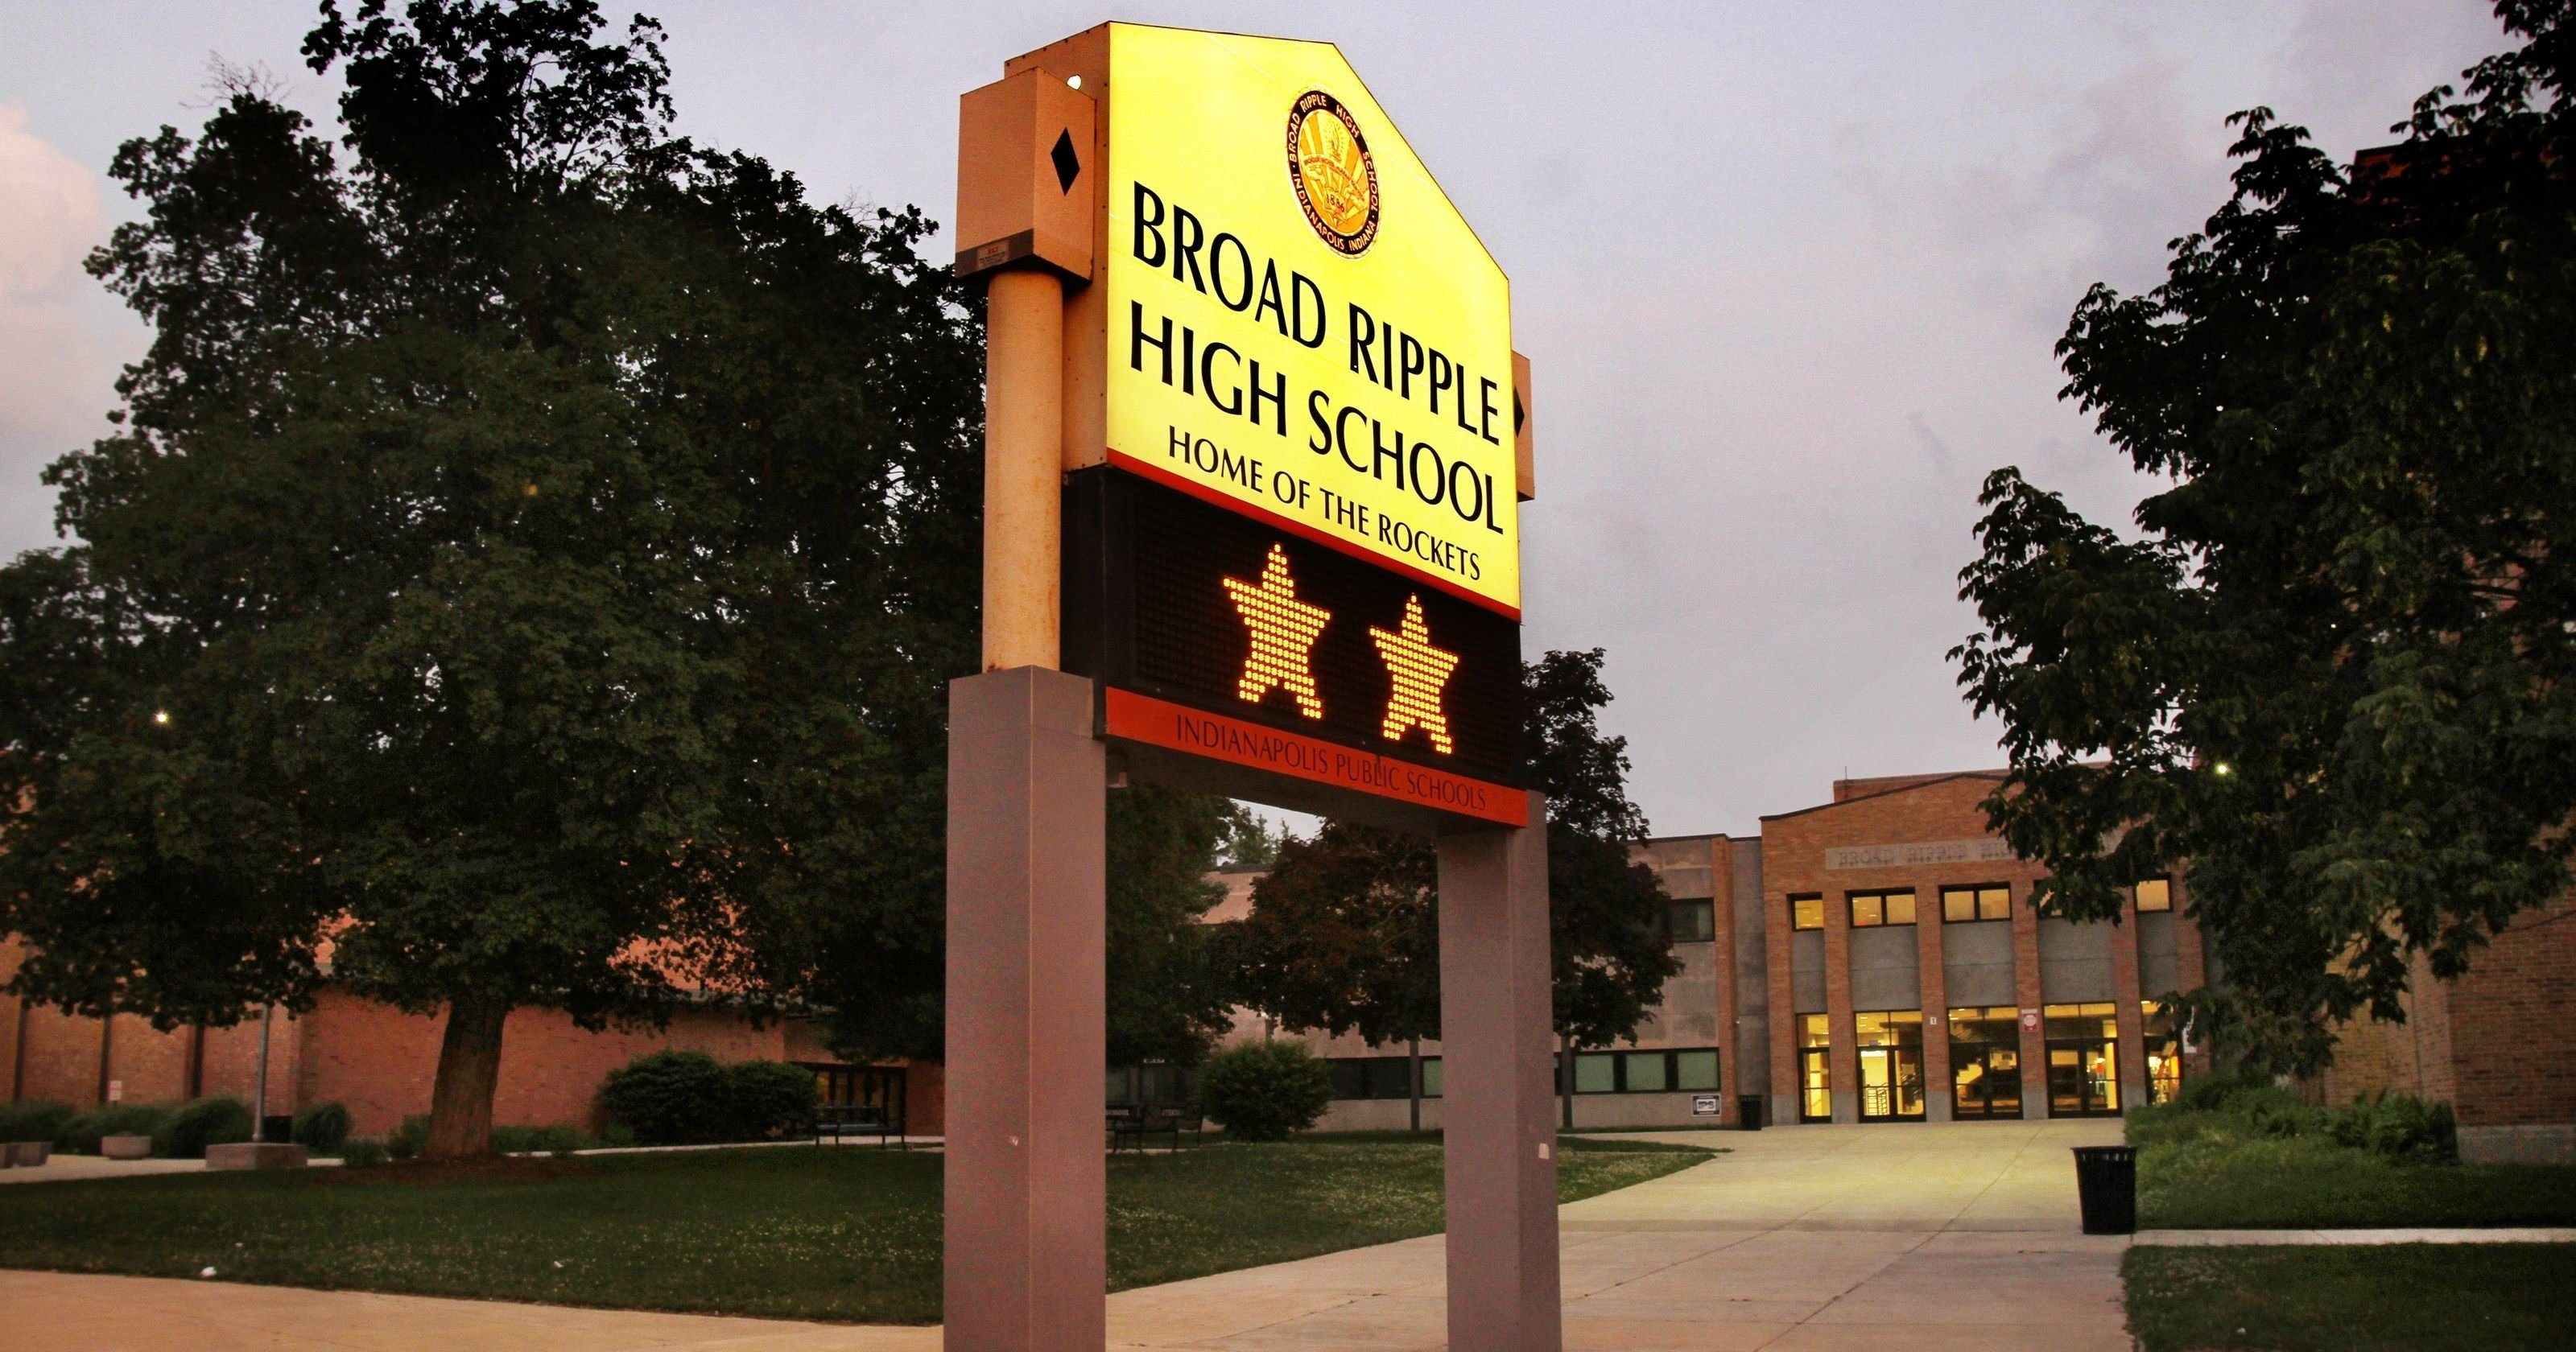 broad ripple high school closing would change neighborhood